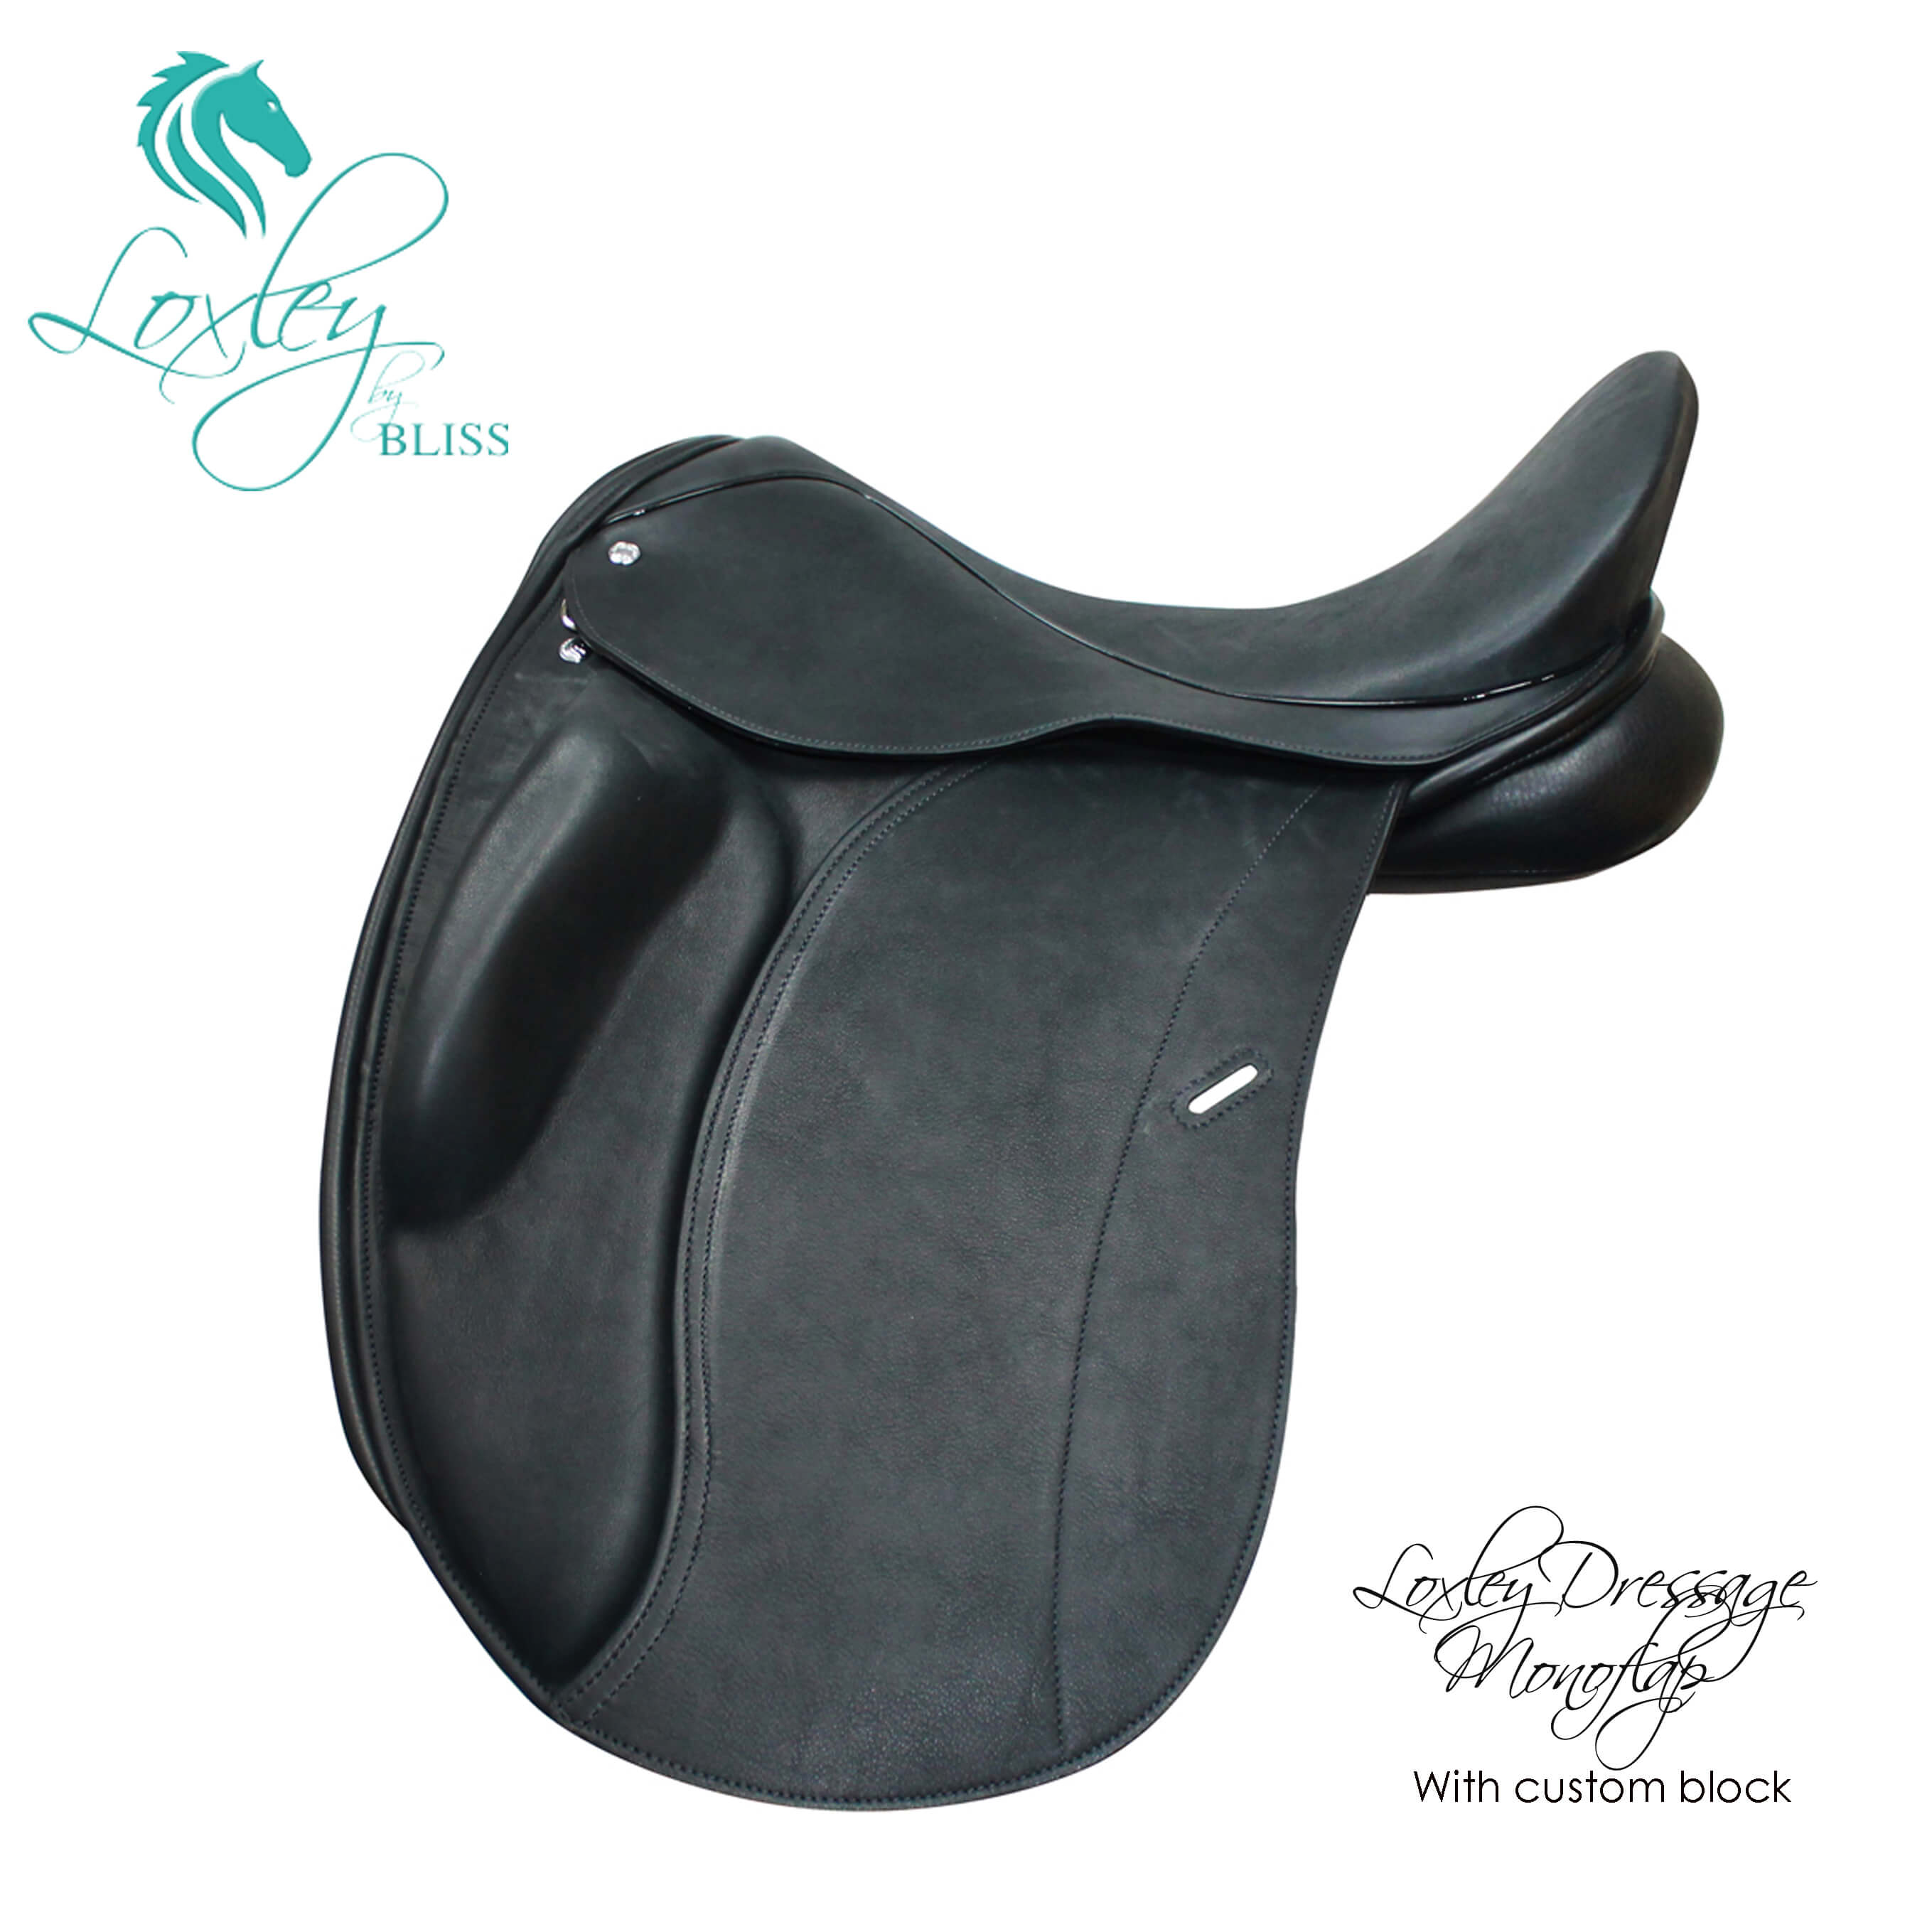 14 Loxley Dressage monoflap side Image custom block